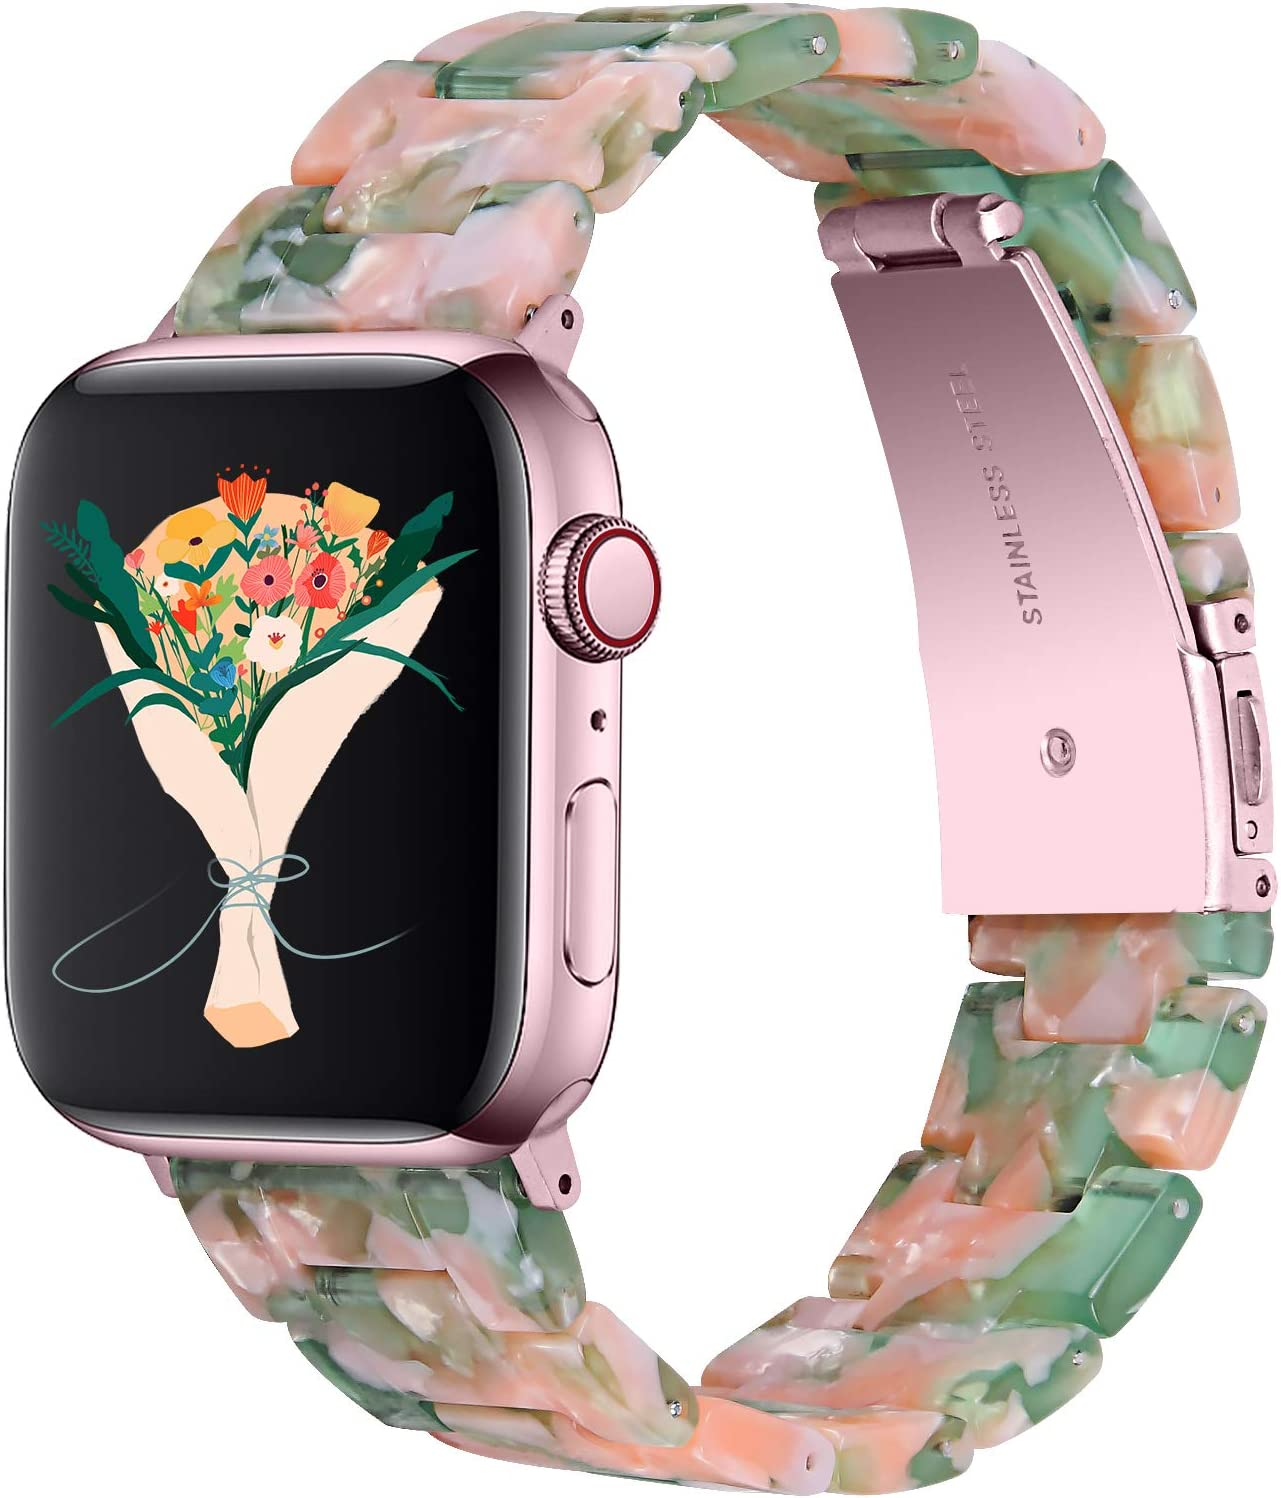 Apple Watch Bands,Fashion Resin iWatch Bands Bracelet Compatible with Stainless Steel Buckle for 40mm 38mm 44mm 42mm Apple Watch Series 6 / SE / 5/4, Series 3 2 1 (Pink Green, 38mm/40mm)